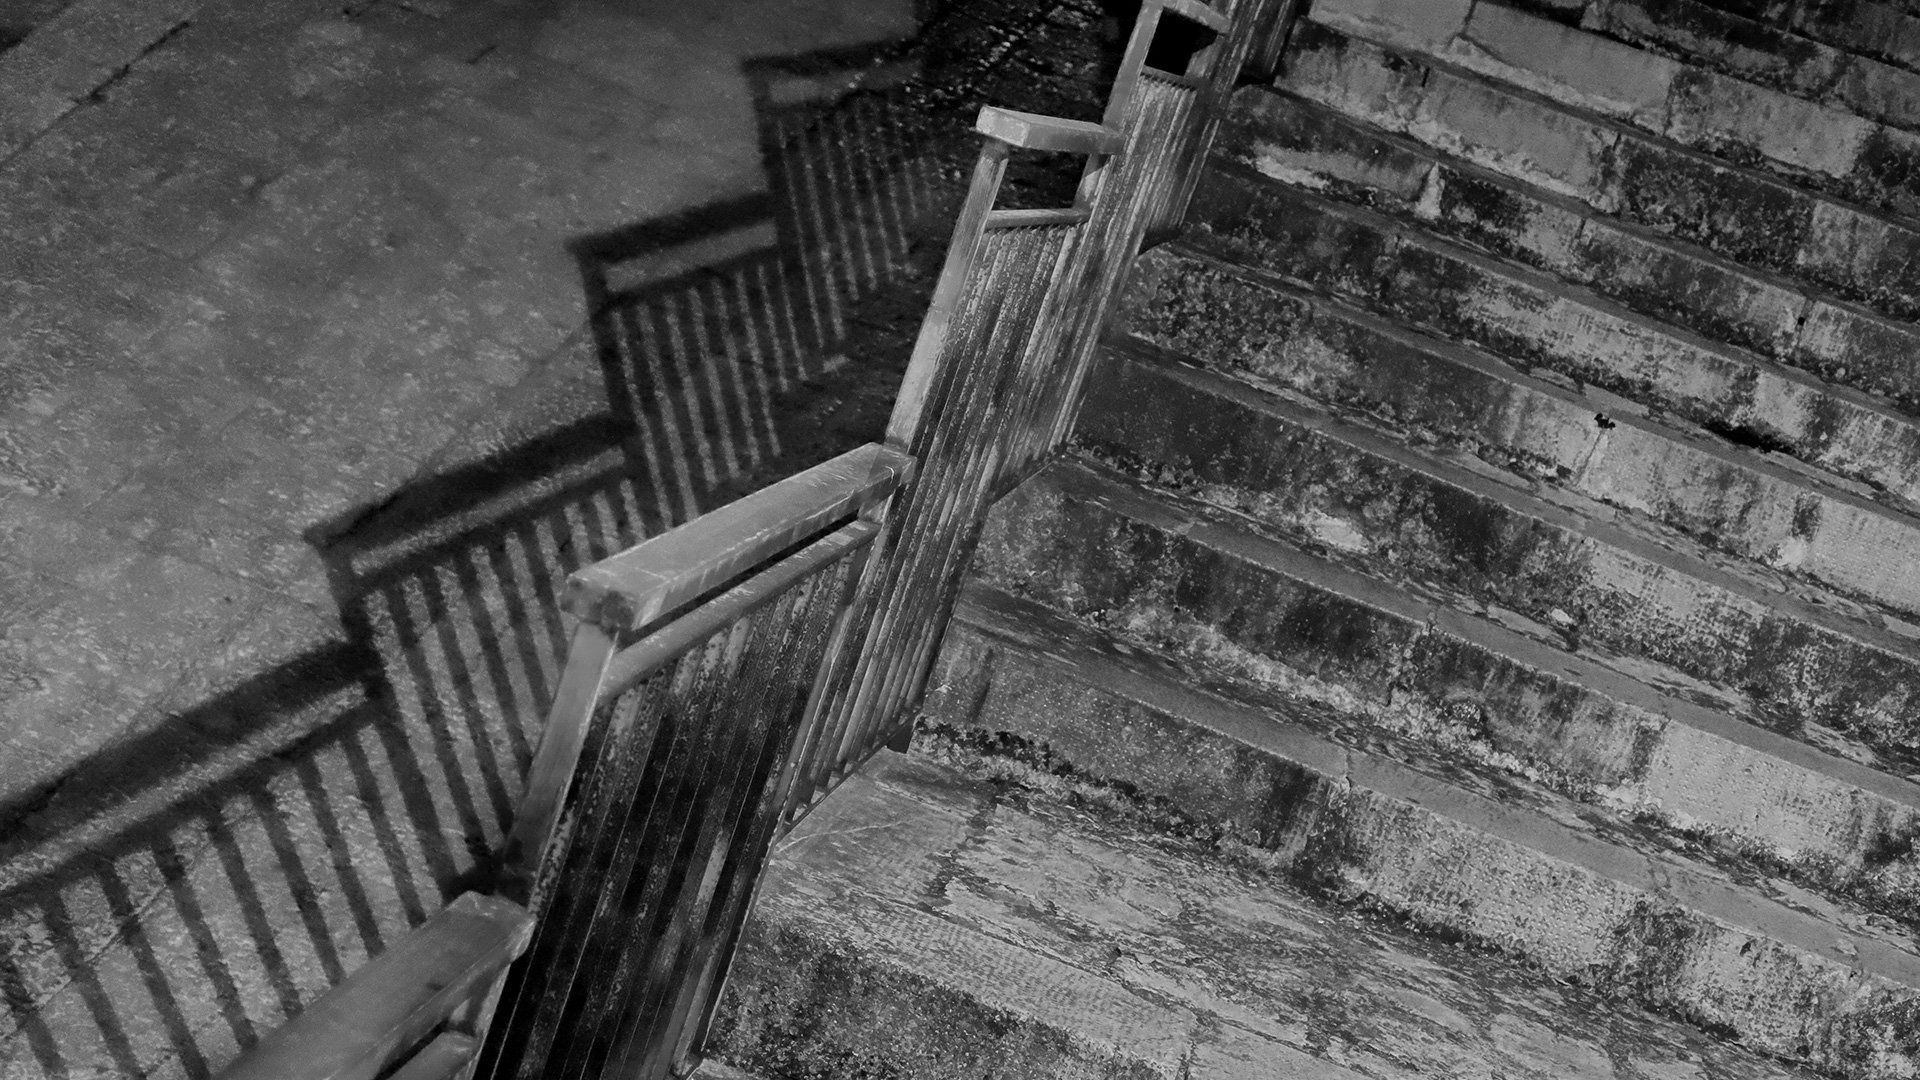 Black and white image of stairs.